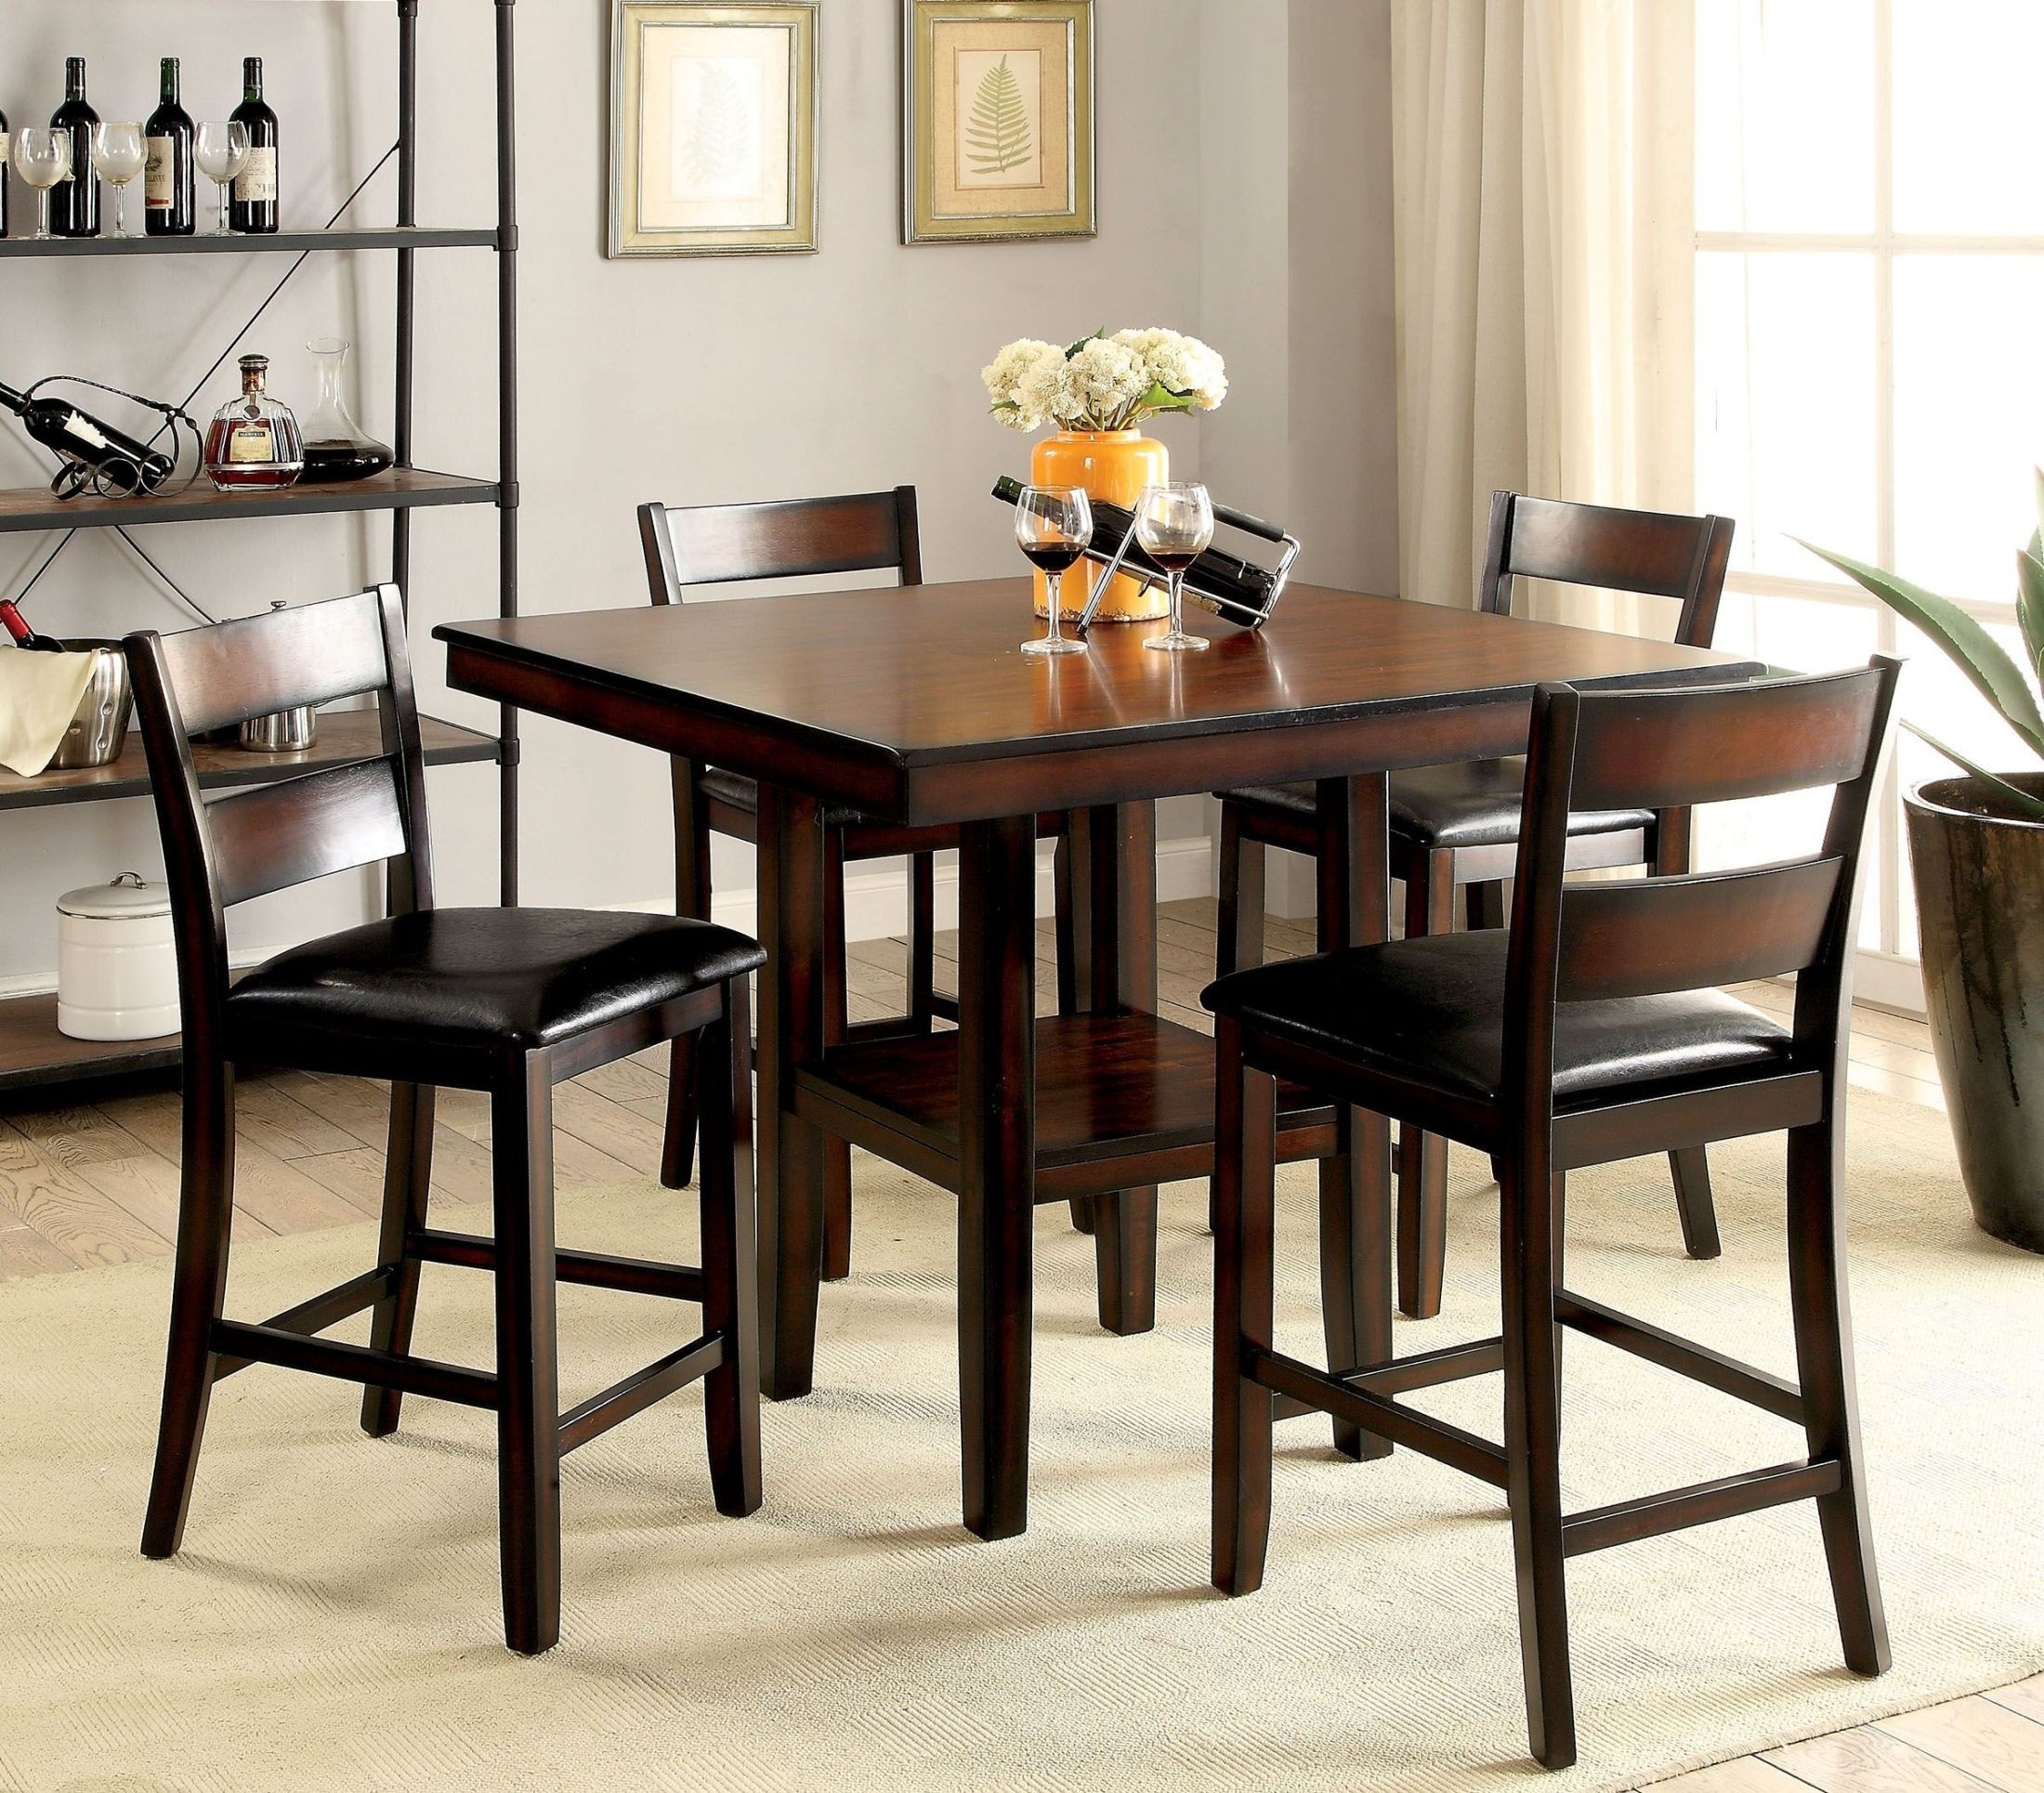 Brown Traditional 5 Piece Round Dining Set Cally: Norah II Brown Cherry 5 Piece Counter Height Dining Set